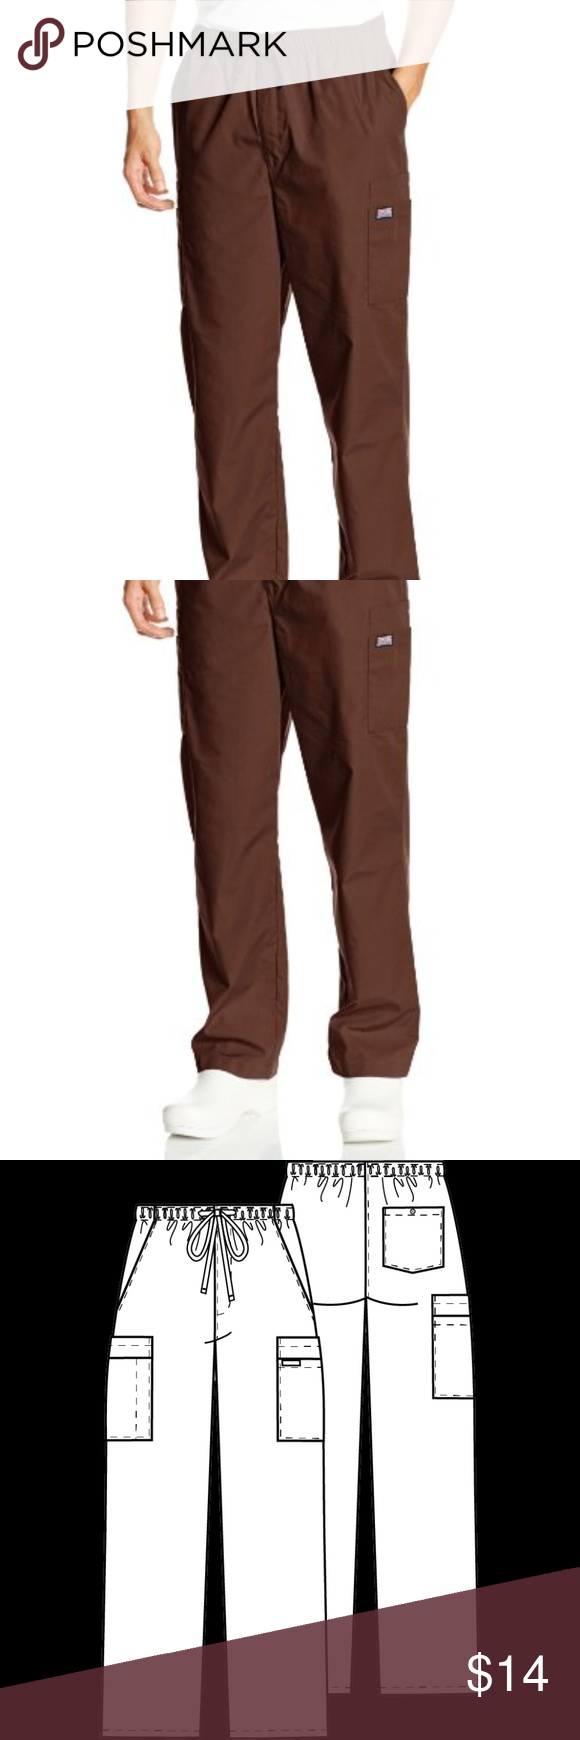 43a88478522 NWT Men's Cherokee Cargo Scrub Pant Chocolate New With Tags Cherokee  Workwear Men's Cargo Zip Fly